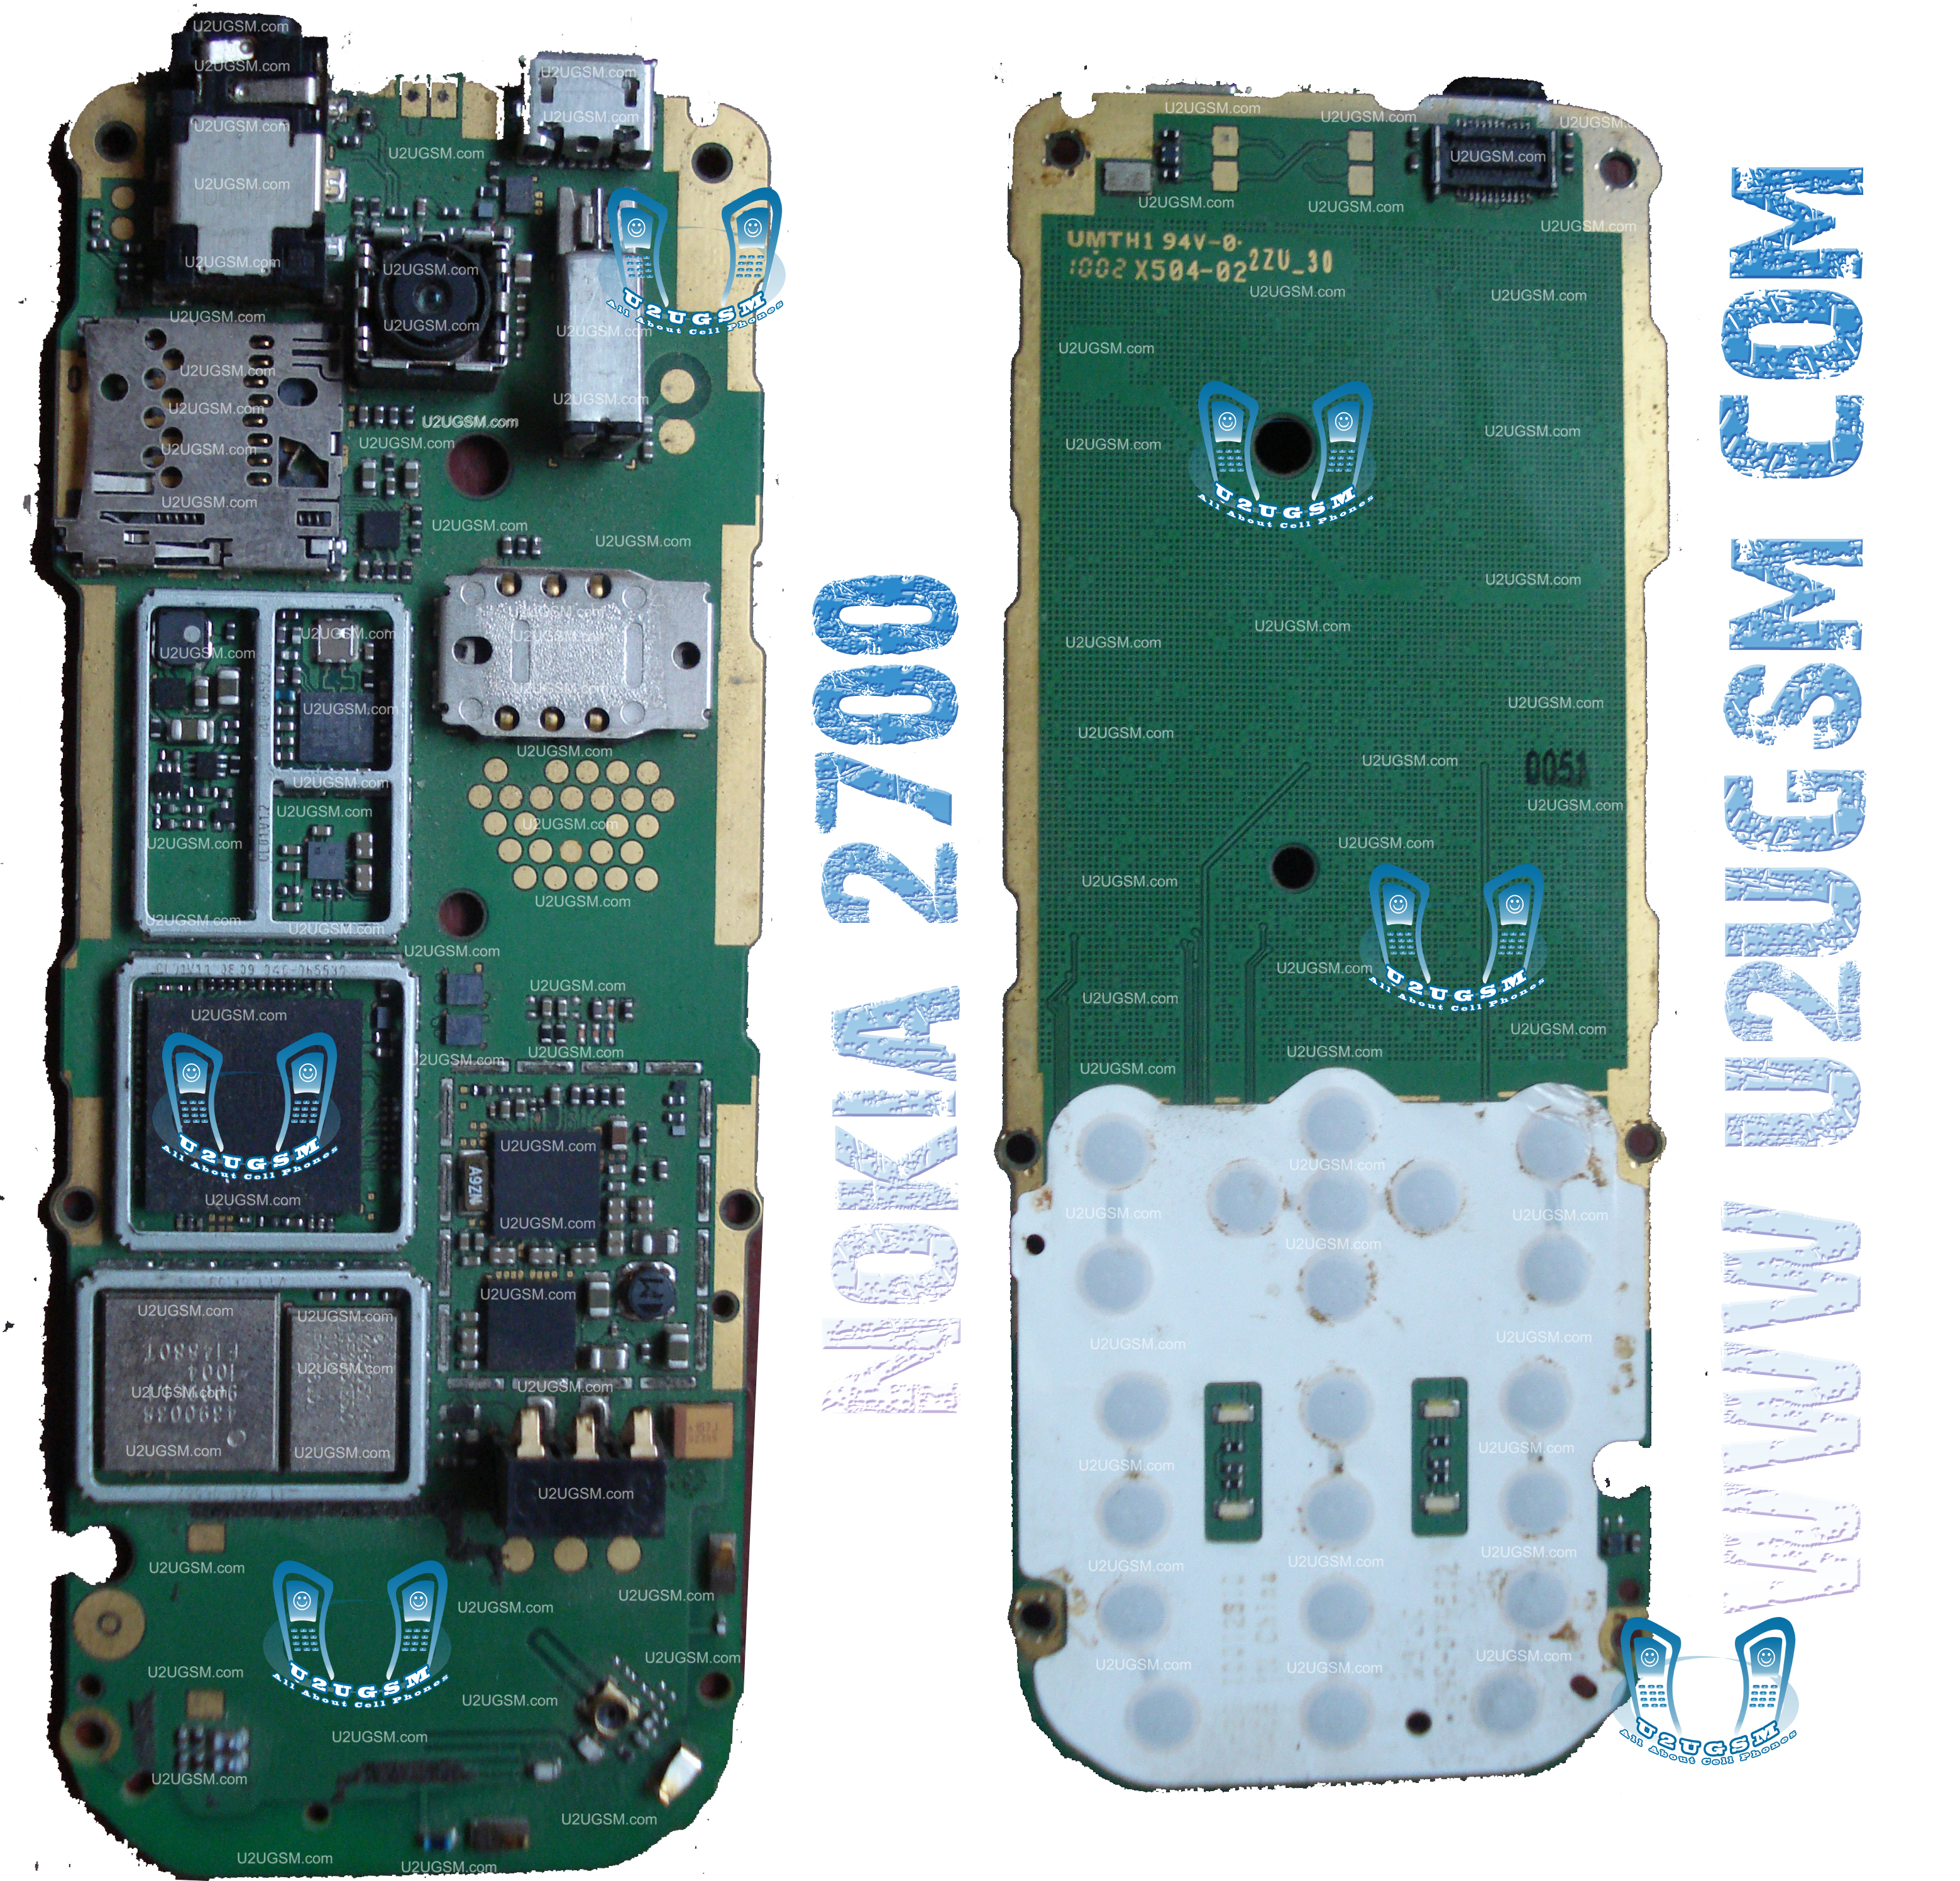 Enjoyable Nokia N97 Exploded View Diagram And Pcb Schematic Basic Wiring 101 Olytiaxxcnl